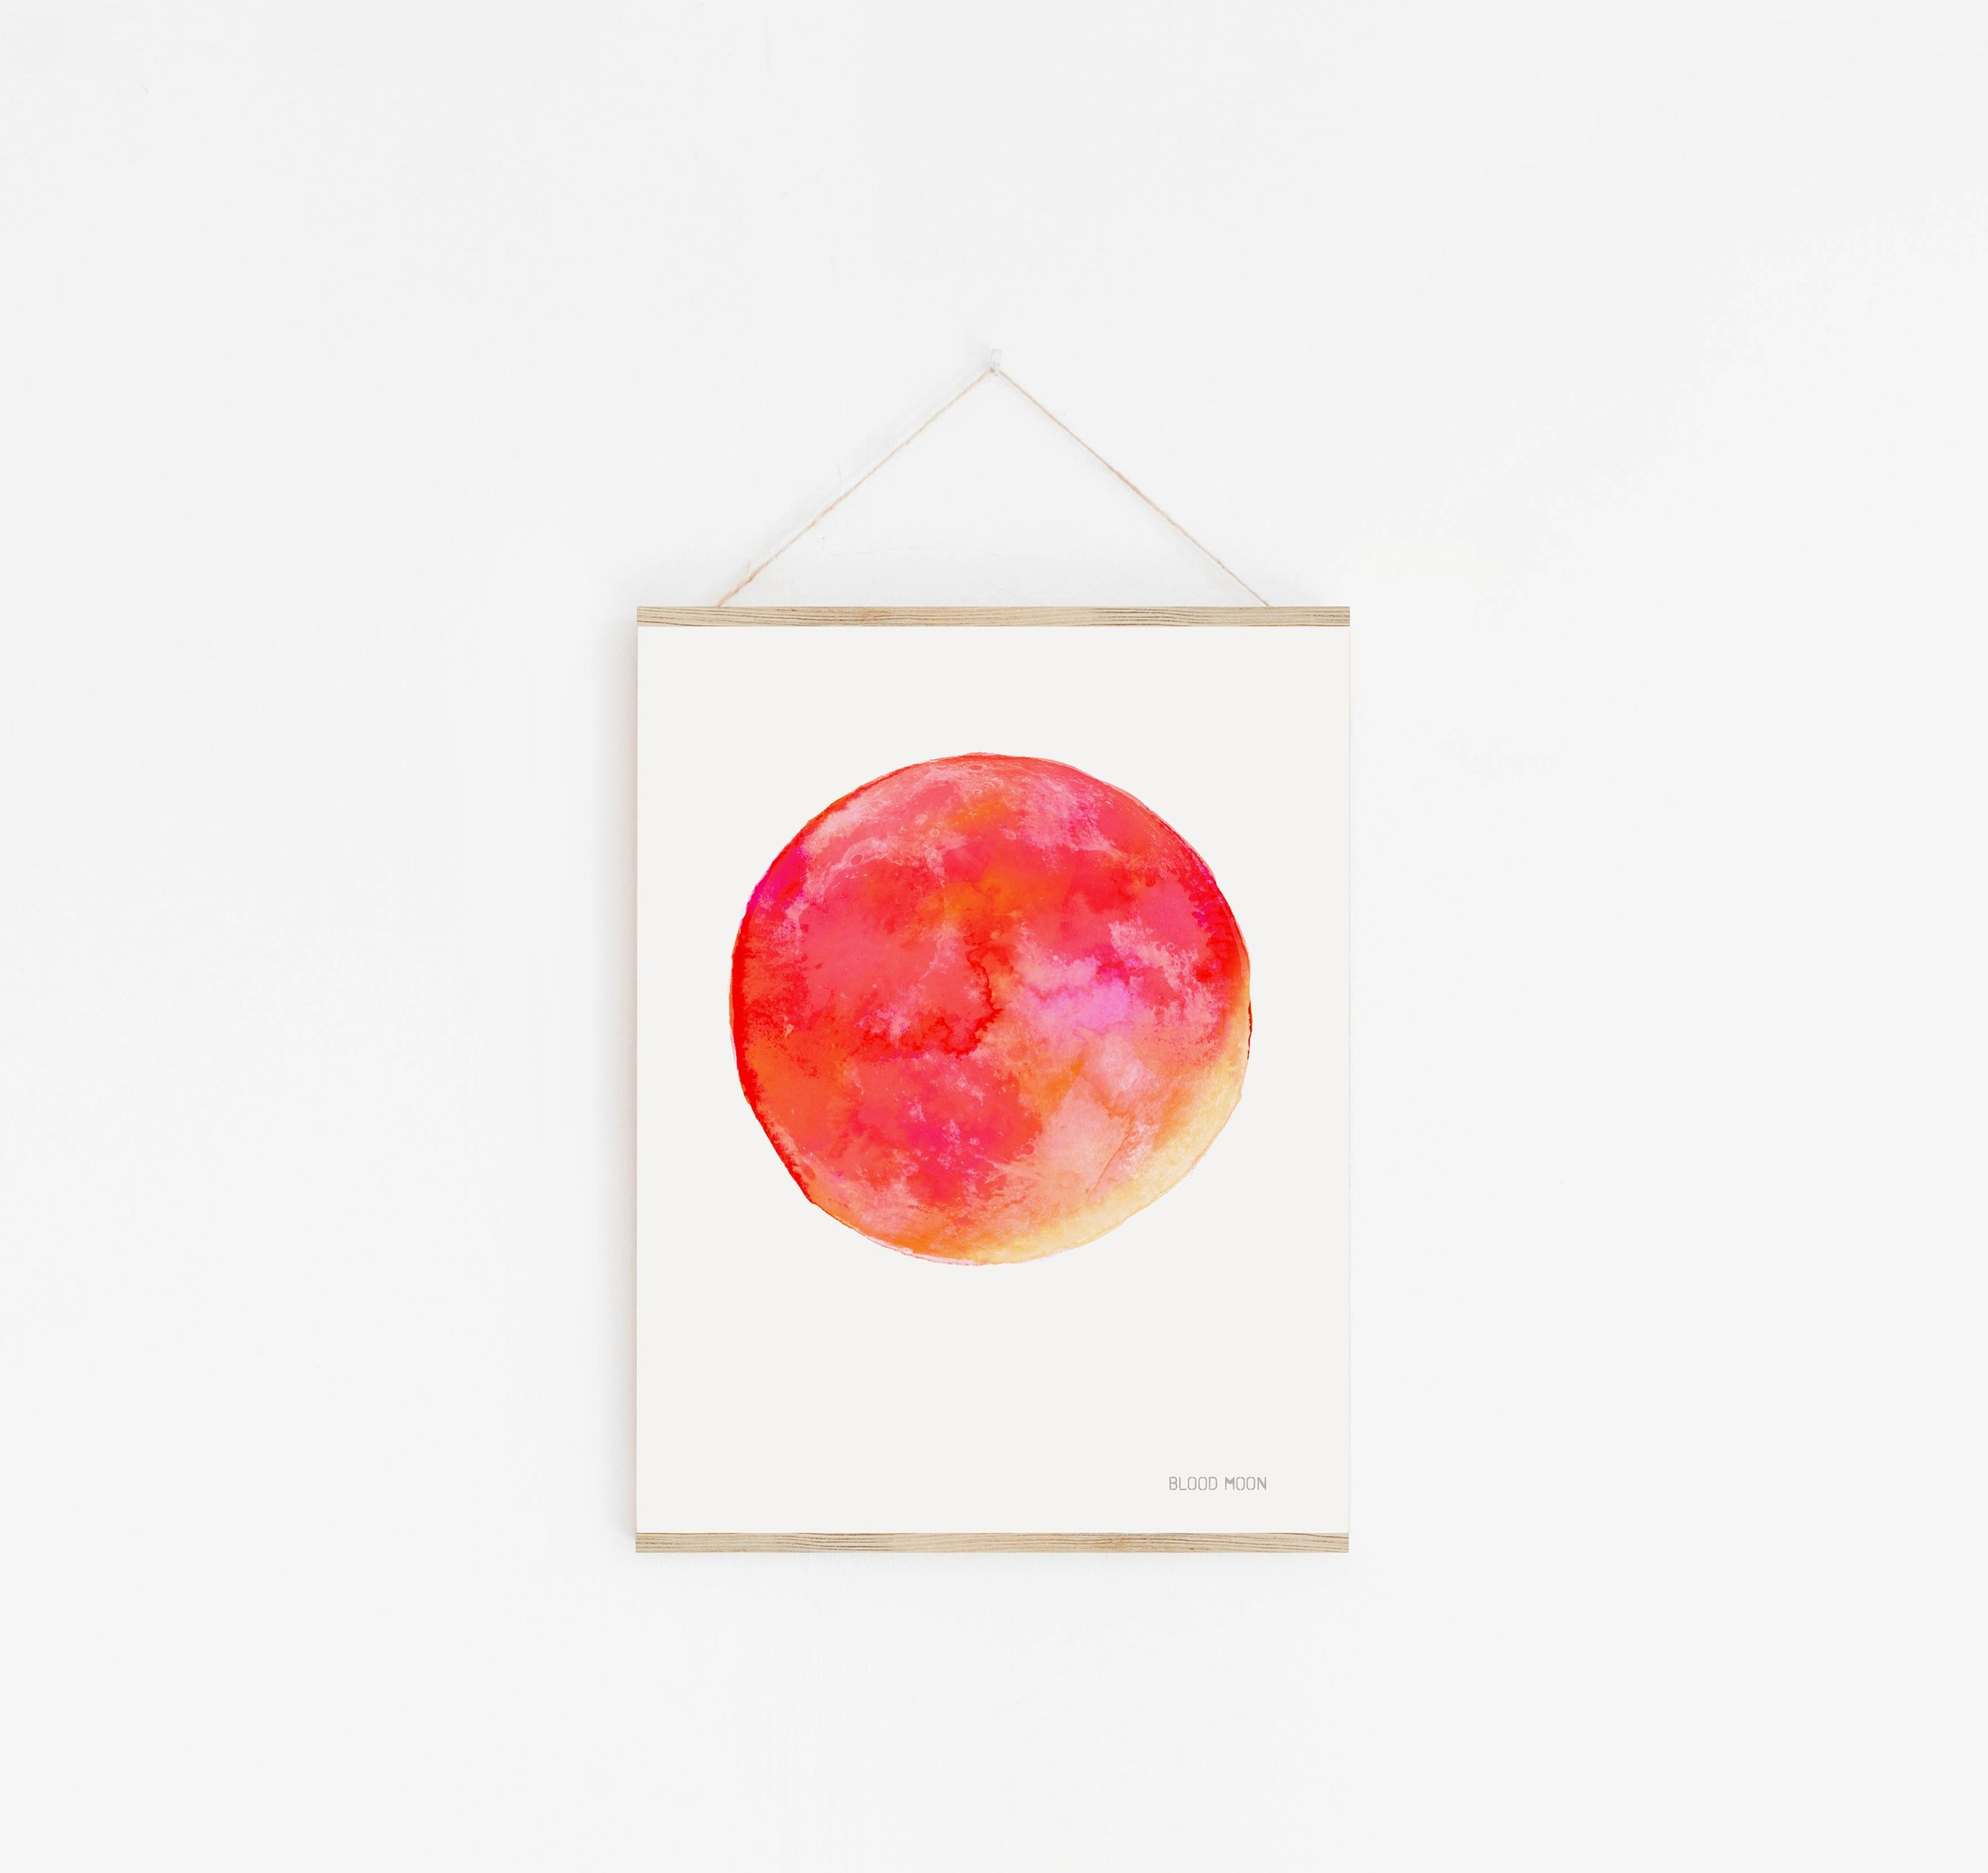 Moon print displayed with poster hanger